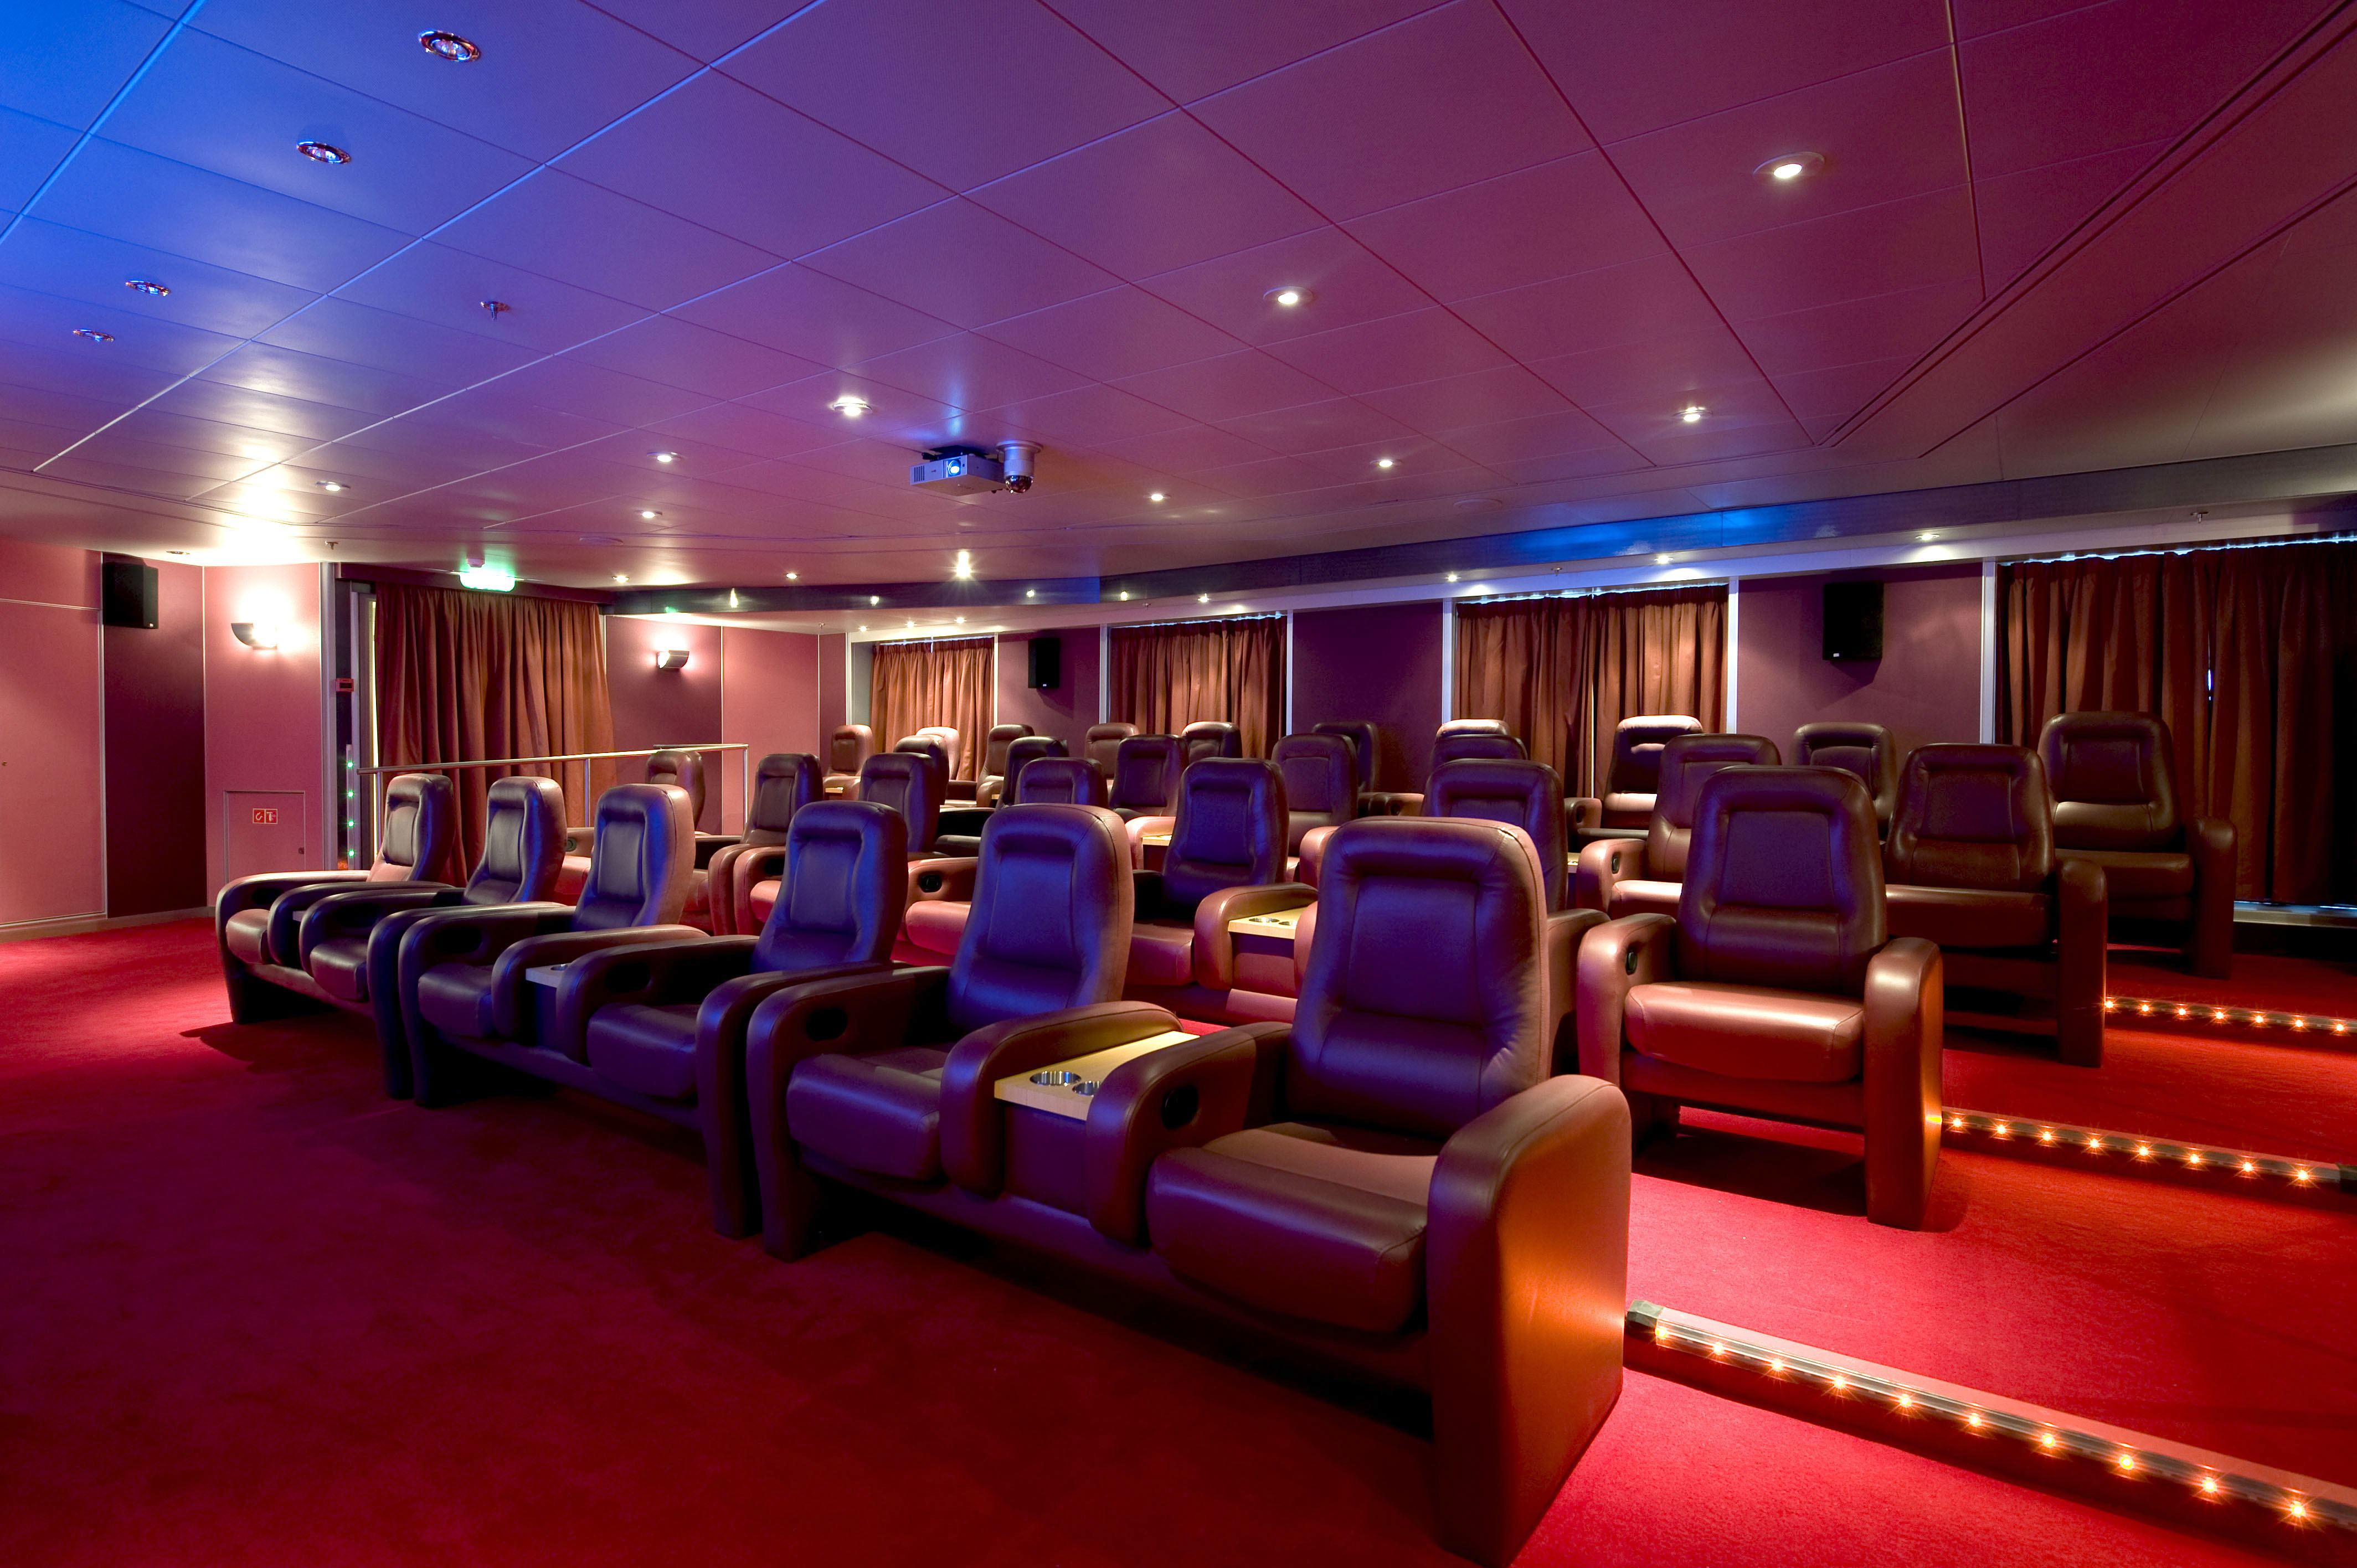 P&O Cruises Arcadia Interior The Screening Room.jpg